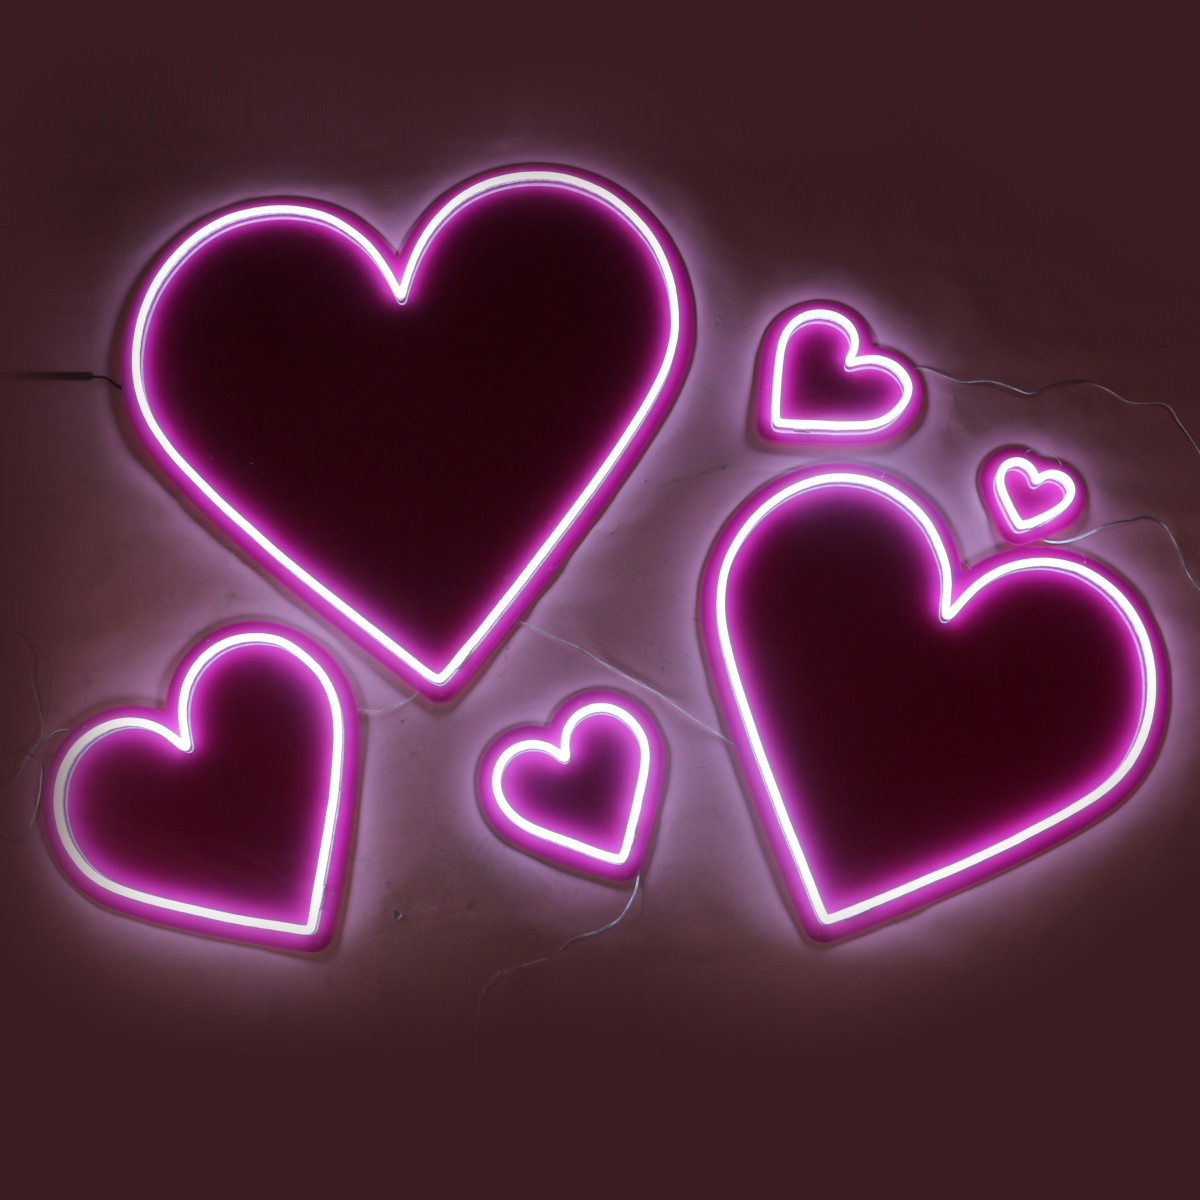 NS007 Pink hearts neon sign 1